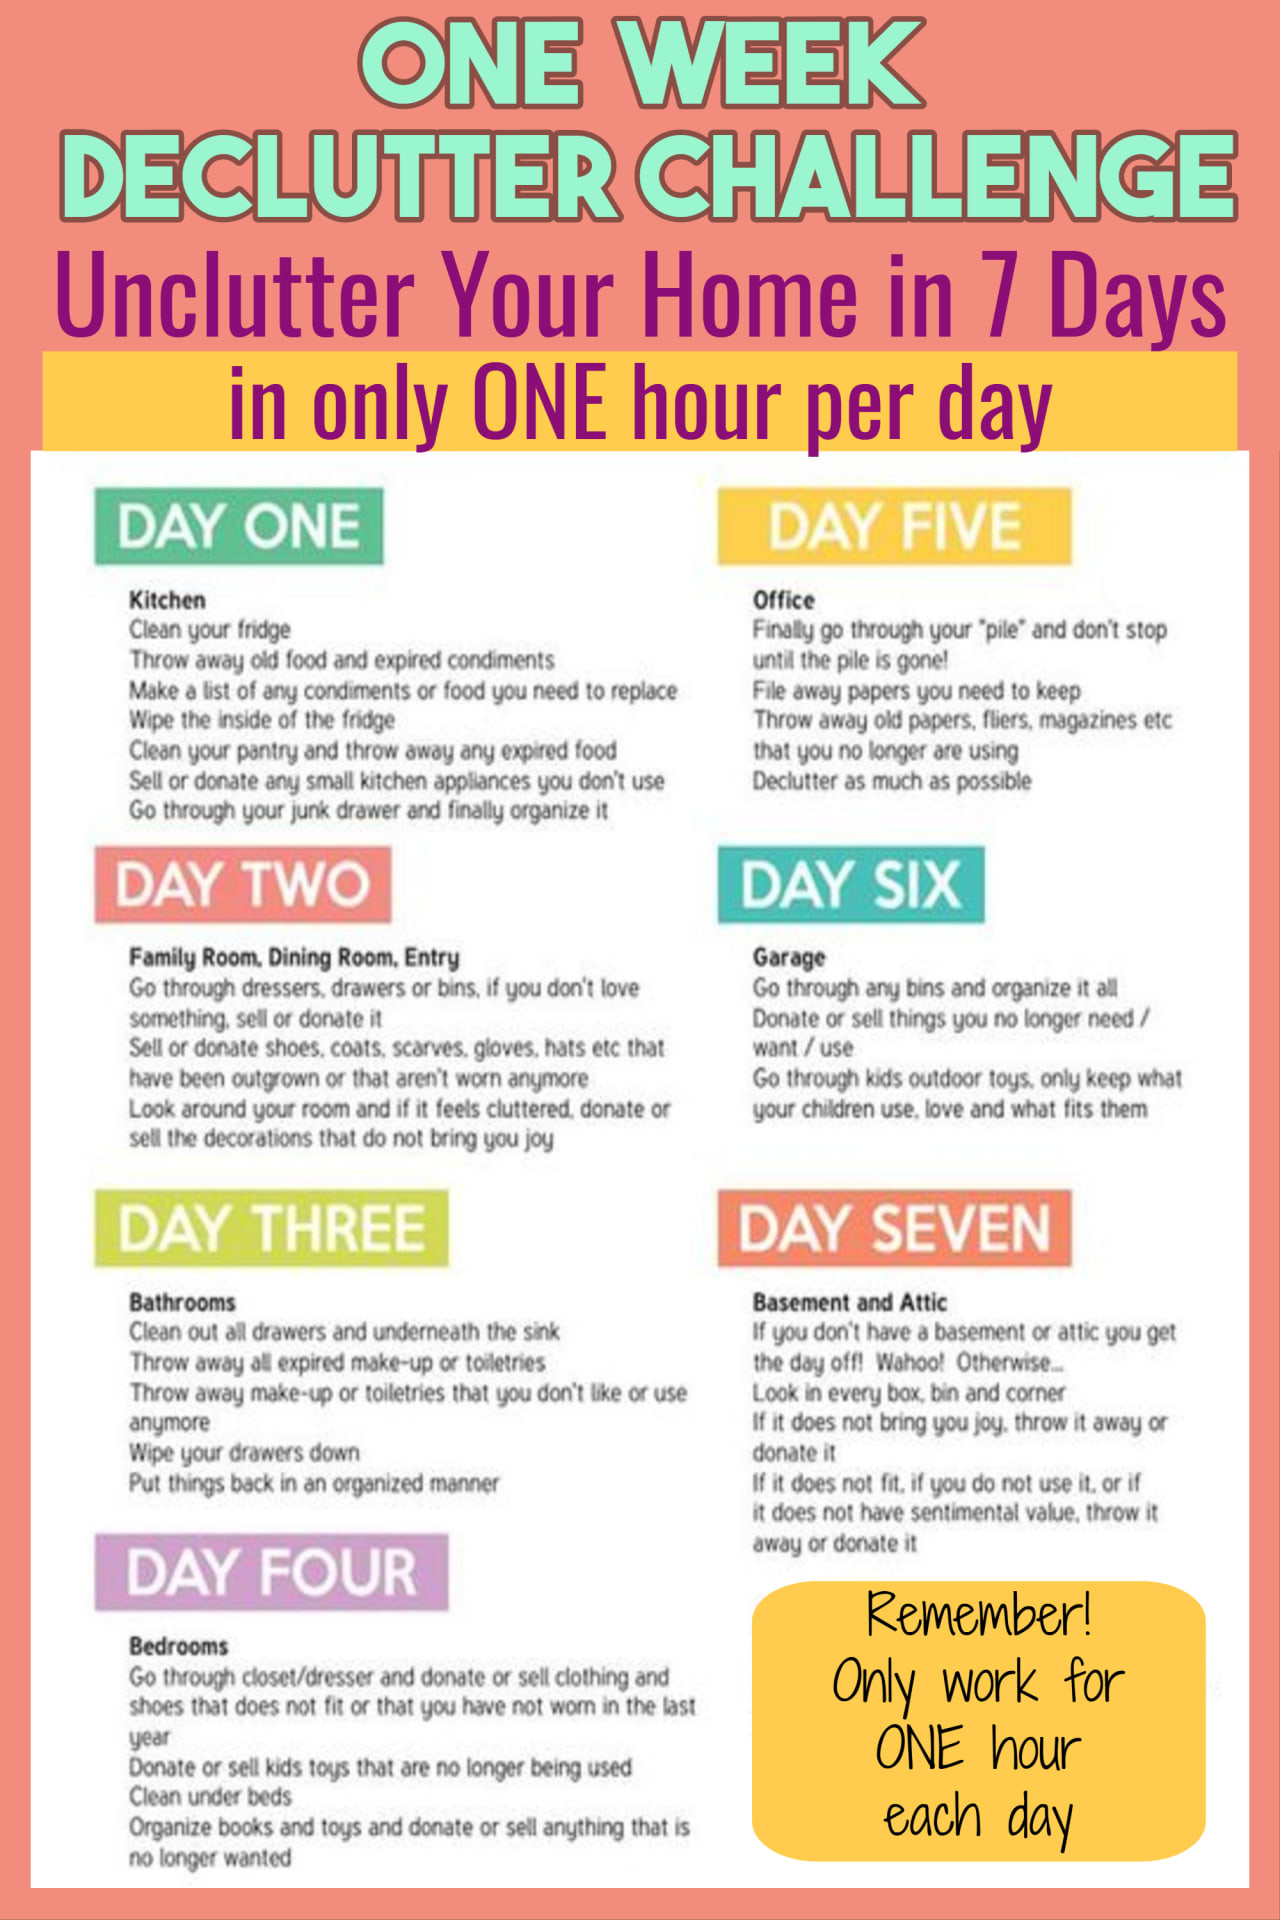 Declutter entire house free printable, good ideas and organizing tips. How about a clean house in one hour a day? These daily chores to keep house clean decluttered and organized without getting overwhelmed are great tips and check lists for busy moms who want neat and tidy households.  Declutter and organize printables for a one week declutter challenge to go from cluttered mess to organized success.